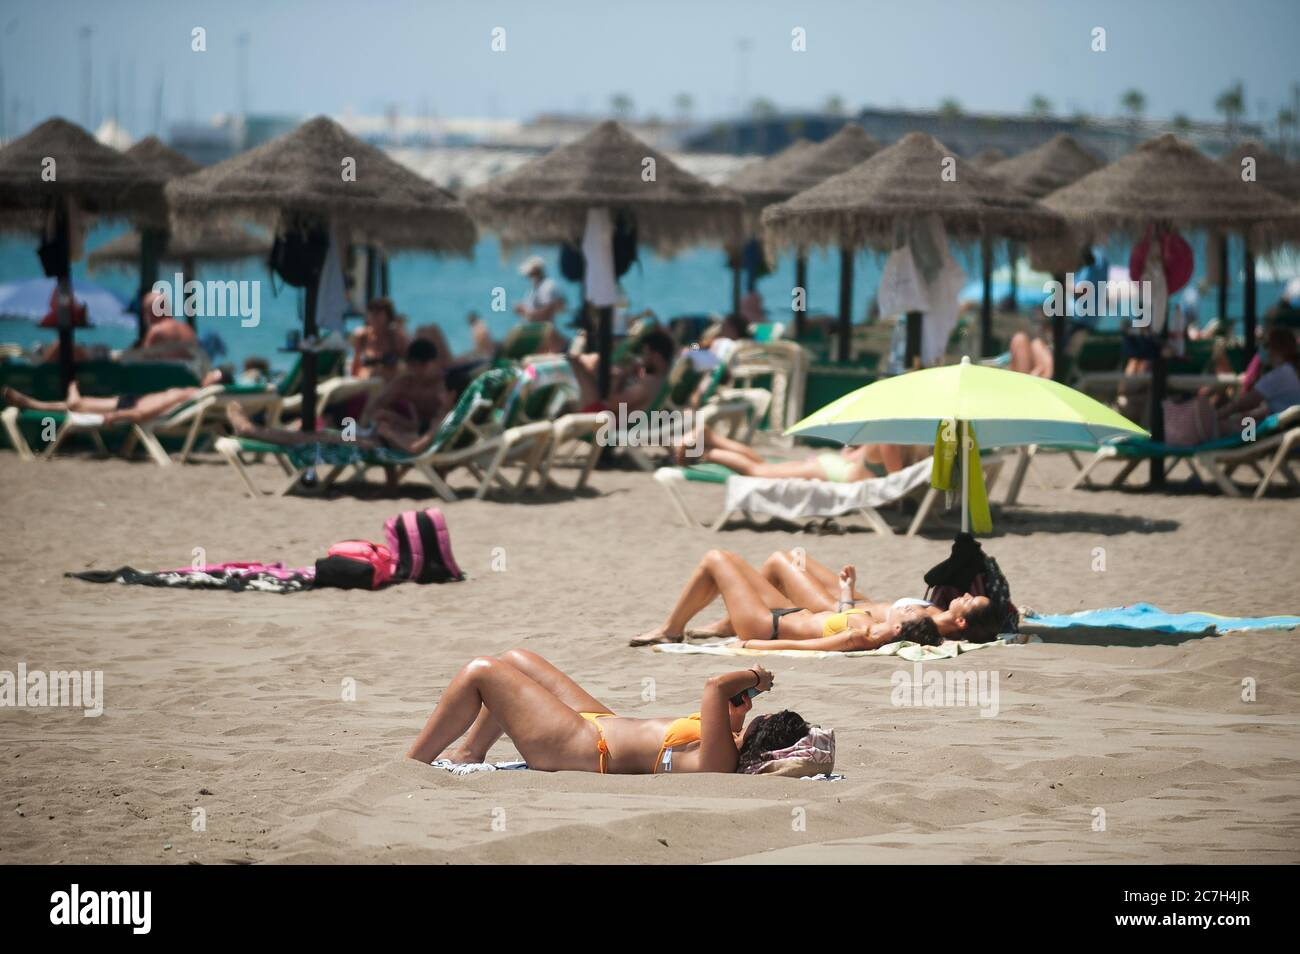 Malaga, Spain. 17th July, 2020. People are seen sunbathing at La Malagueta beach amid coronavirus crisis.The appearance of new coronavirus (COVID-19) outbreak in Spain after easing of restrictions has caused the regional government to impose the obligatory use of face masks in outdoors places even when they observe a safe distance between people. This measure tries to curb the spread of coronavirus pandemic. Credit: SOPA Images Limited/Alamy Live News Stock Photo